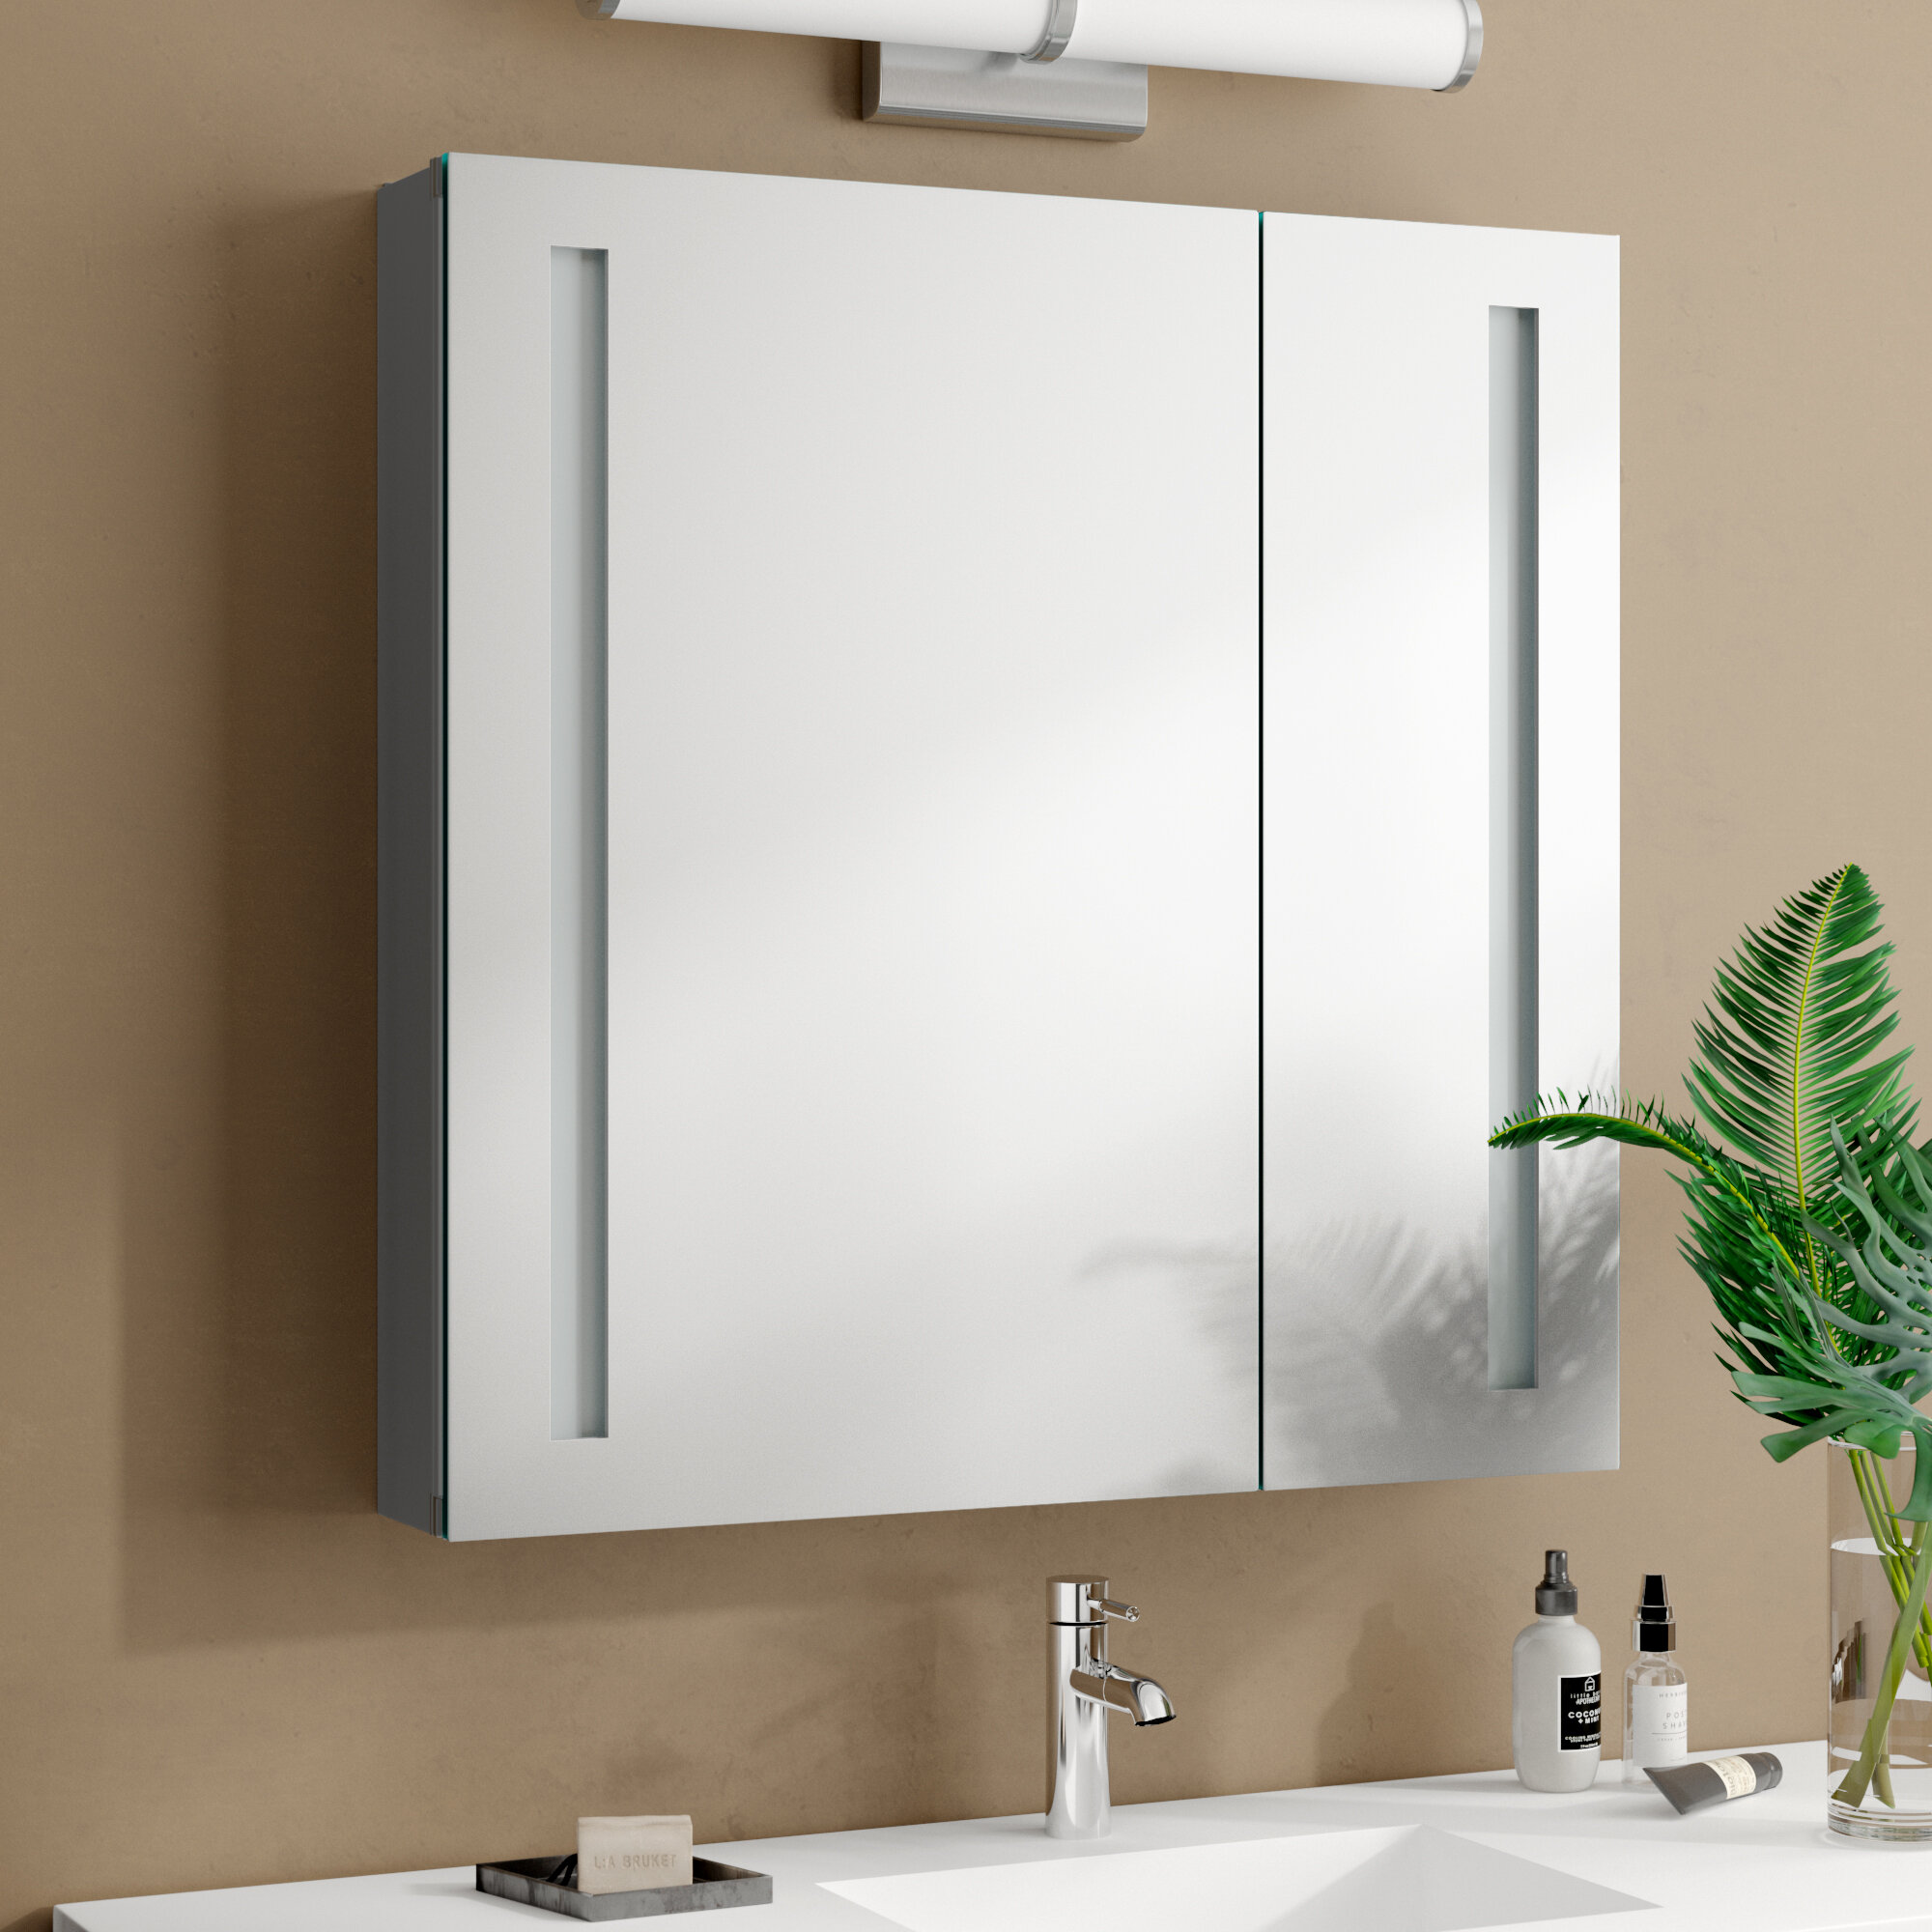 Led Lighting Recessed Medicine Cabinets You Ll Love In 2021 Wayfair